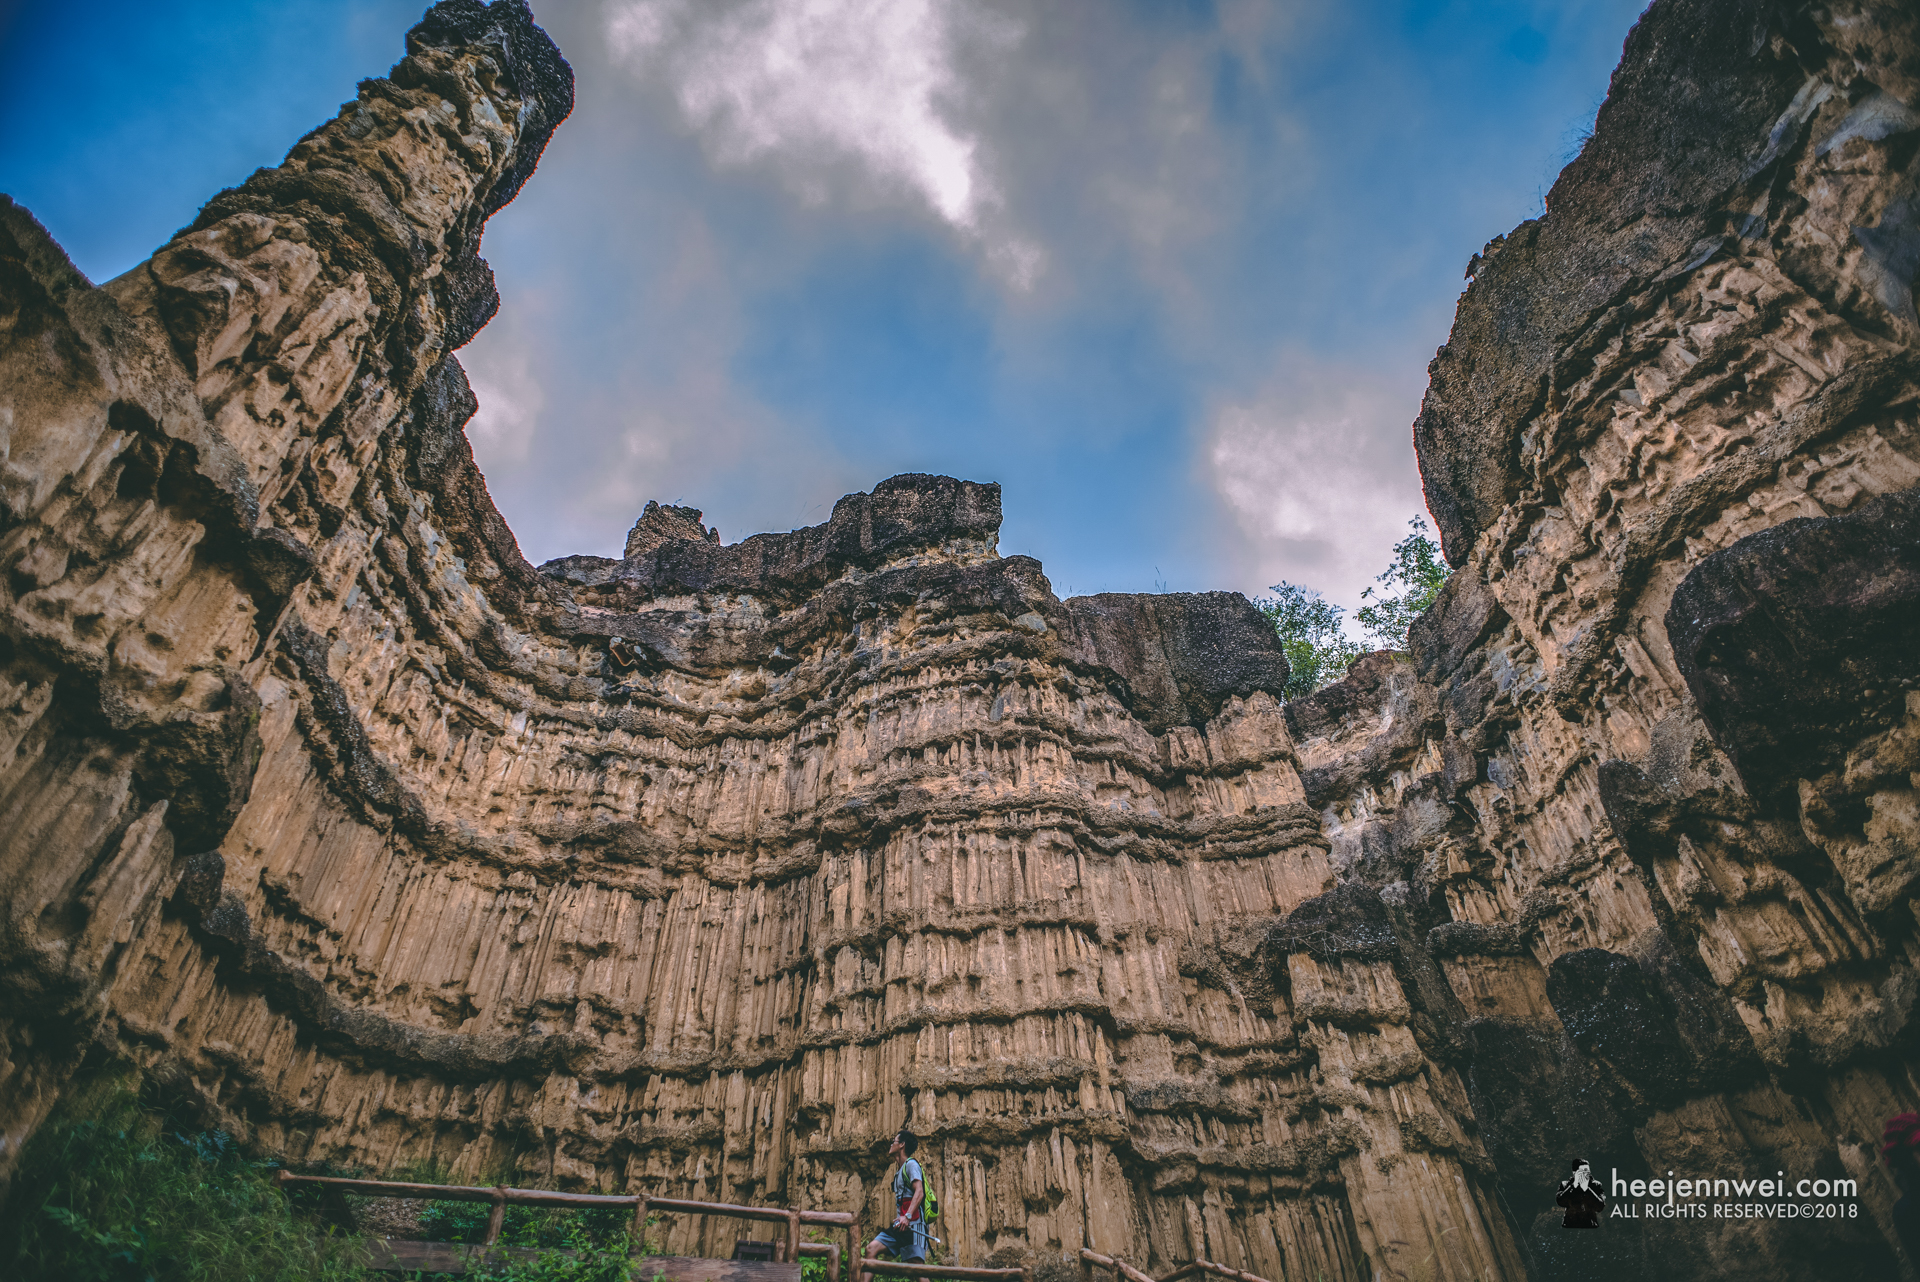 Dwarfed by the yellow 30 metres sandstones.